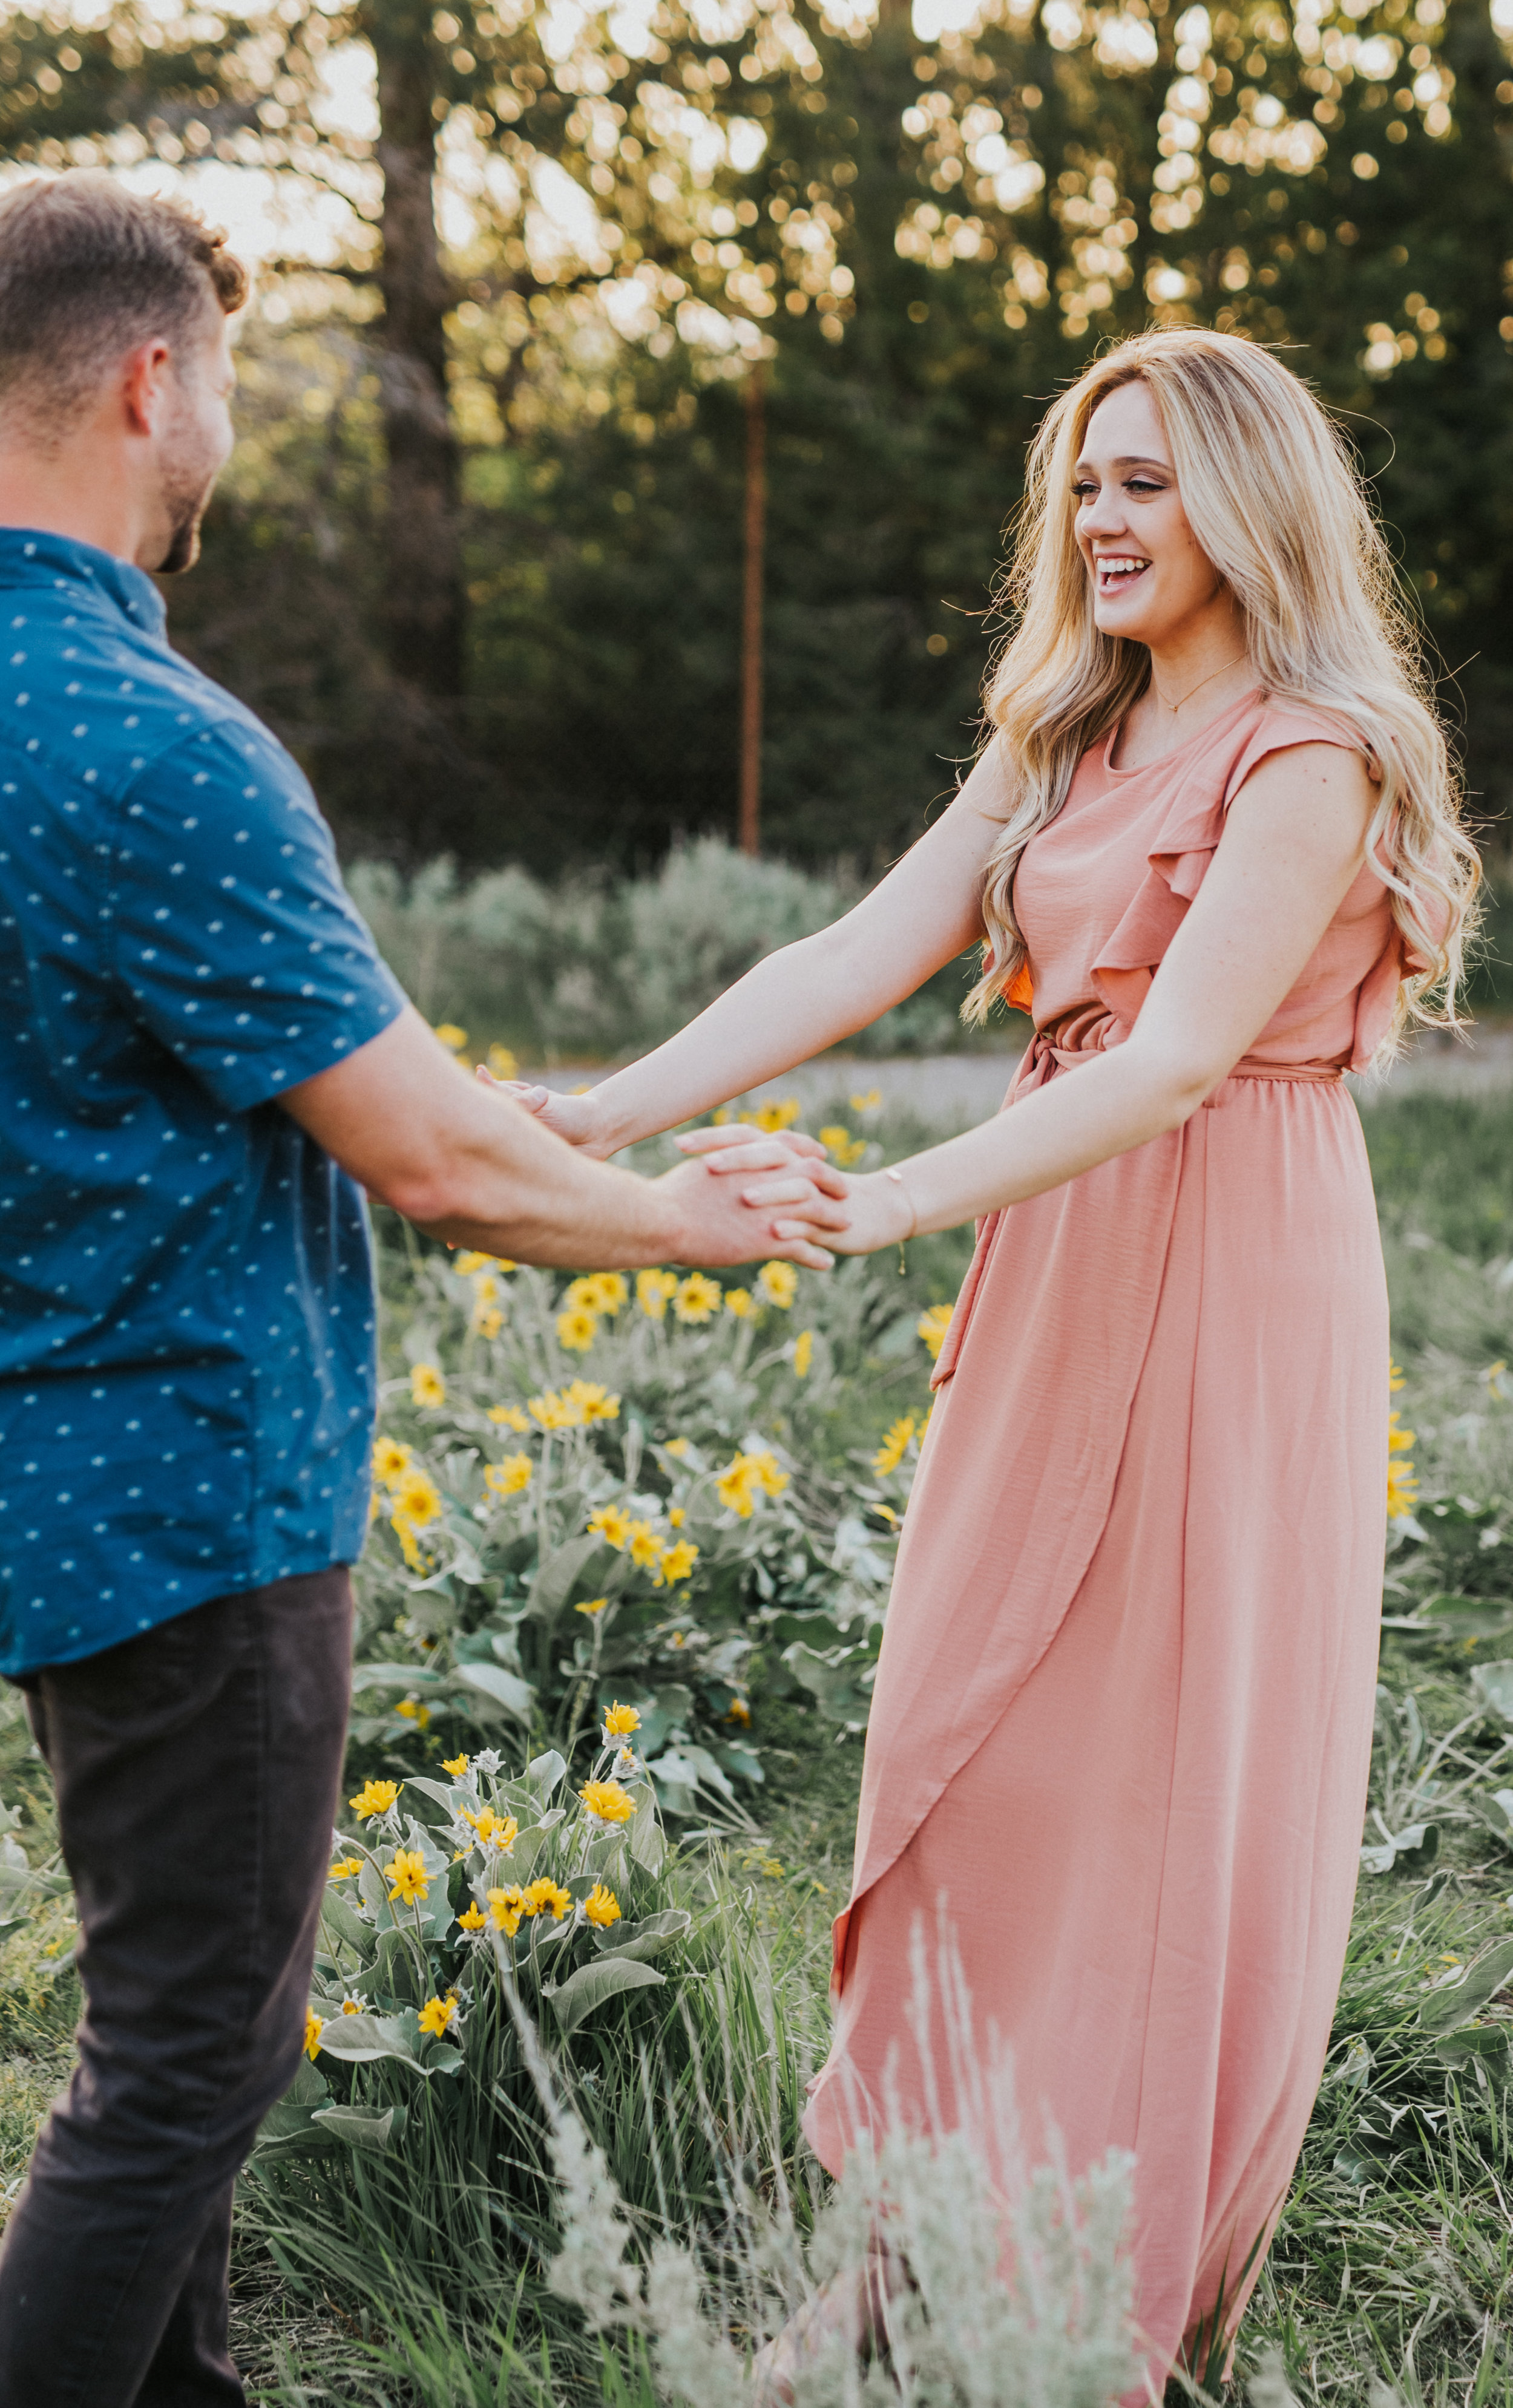 the focus collective workshop photographer workshop mentor session couple session couple formal session semi casual outfit ideas blue and pink outfit ideas couple posing in a field couple posing by wildflowers couple holding hands couple posing ideas engagement photos summer engagement photos #utahweddingphotographer #cachevalleyweddingphotographer #happycouple #couplegoals #relationshipgoals #bridetobe #mrandmrs #engagements #engagementsession #engagementring